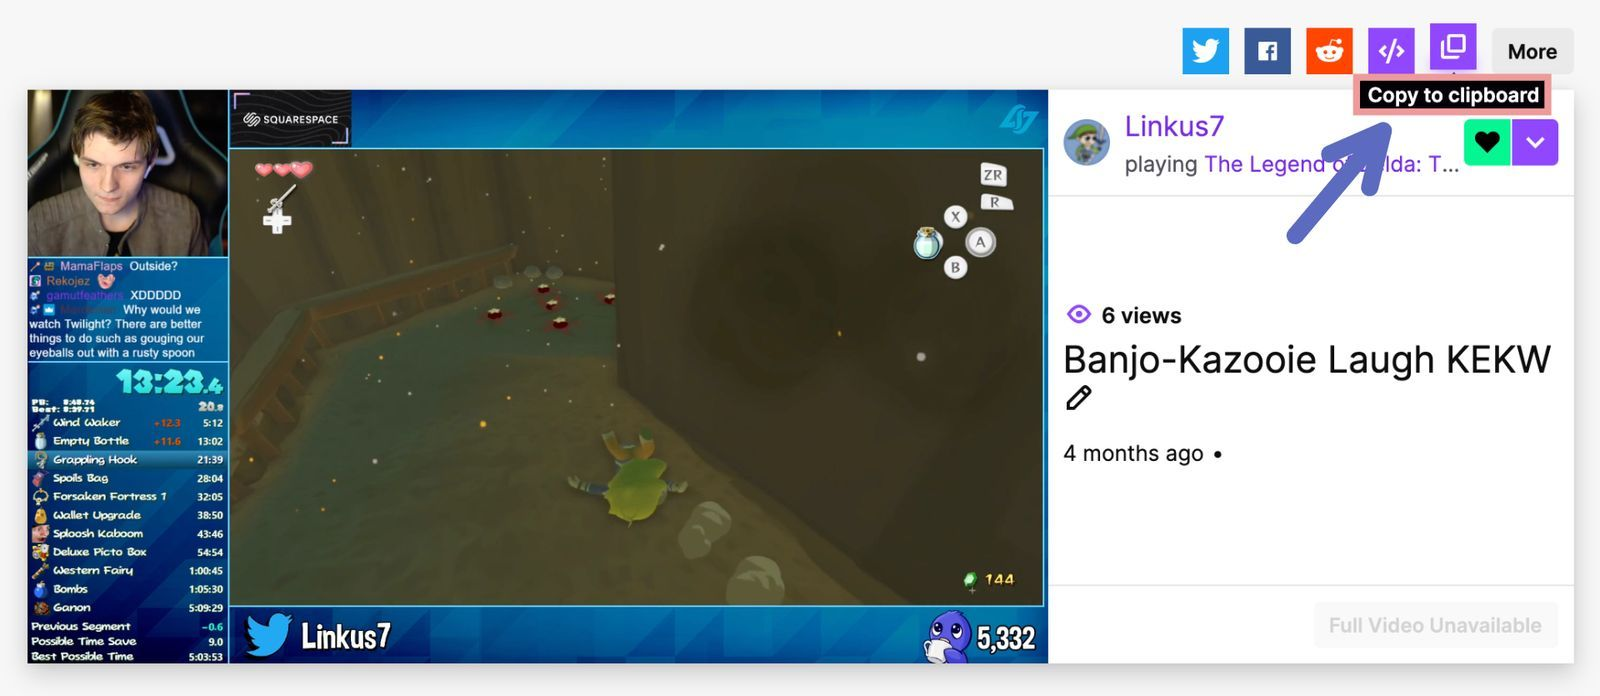 A screenshot showing how to copy the link to a Twitch Clip.